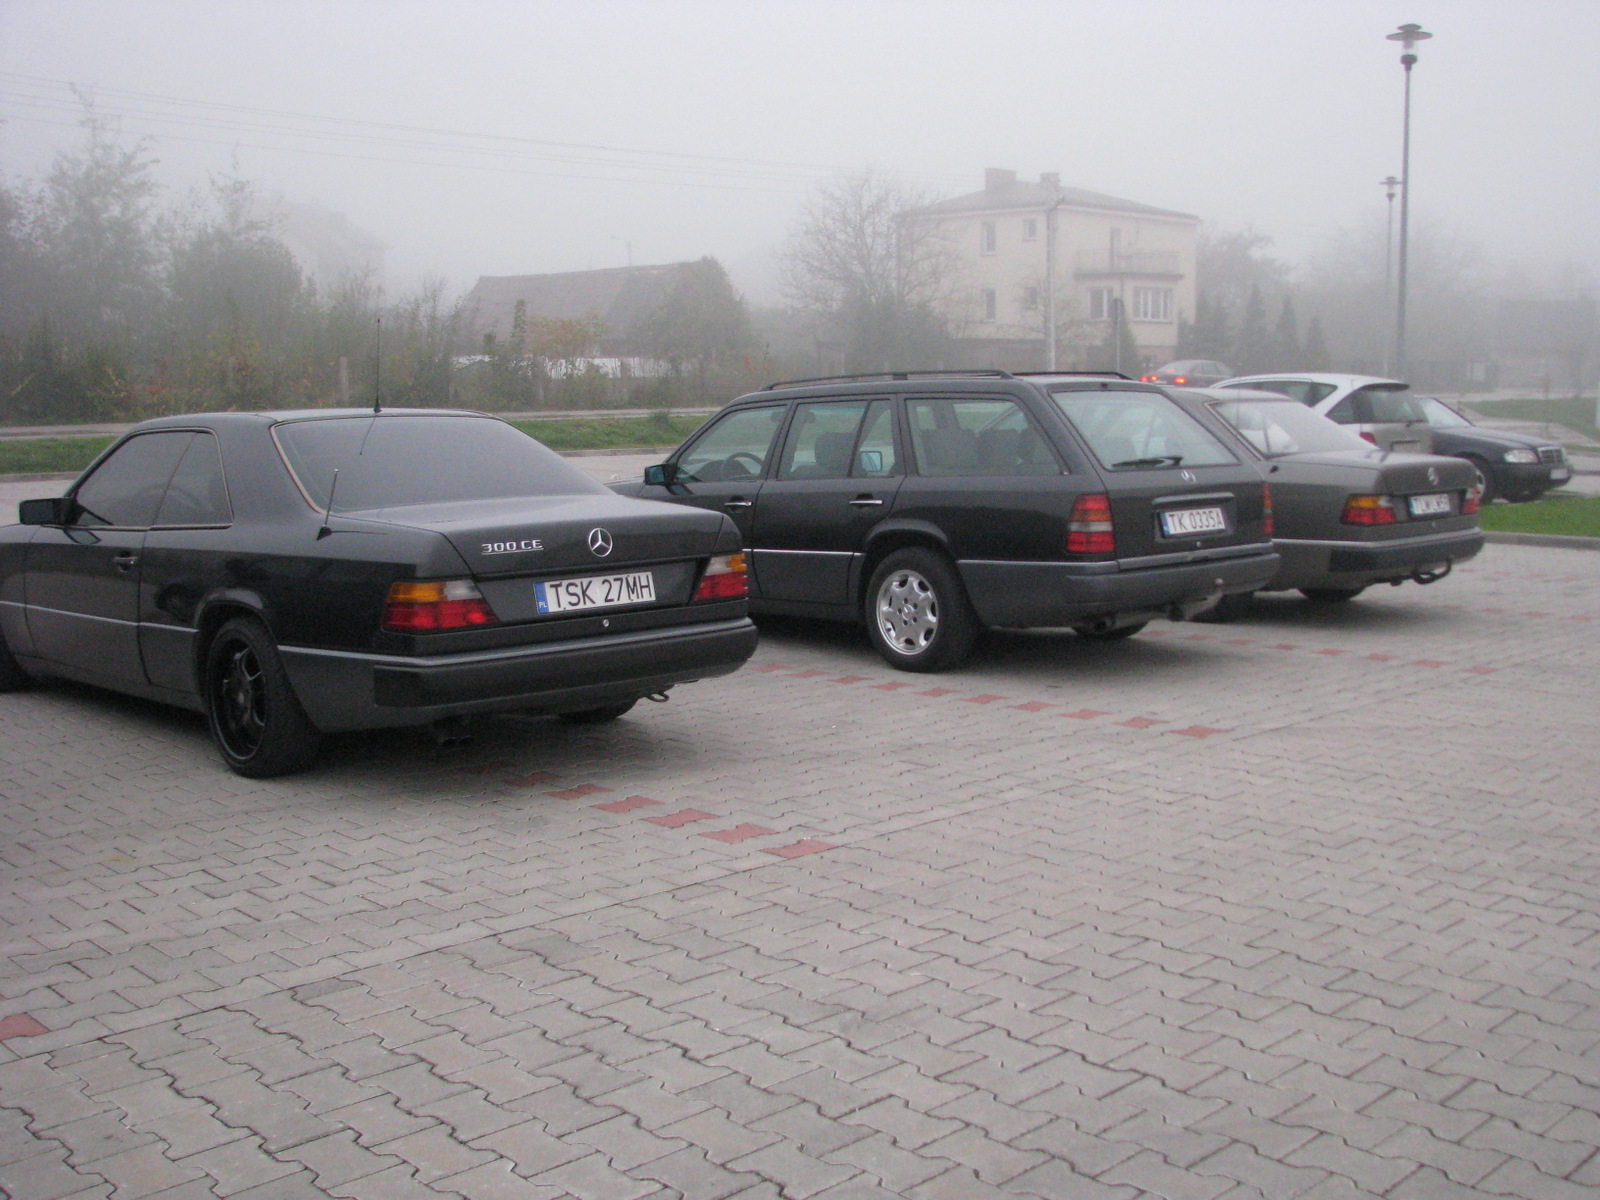 http://124coupe.pl/hosting/images/img000bnb.jpg